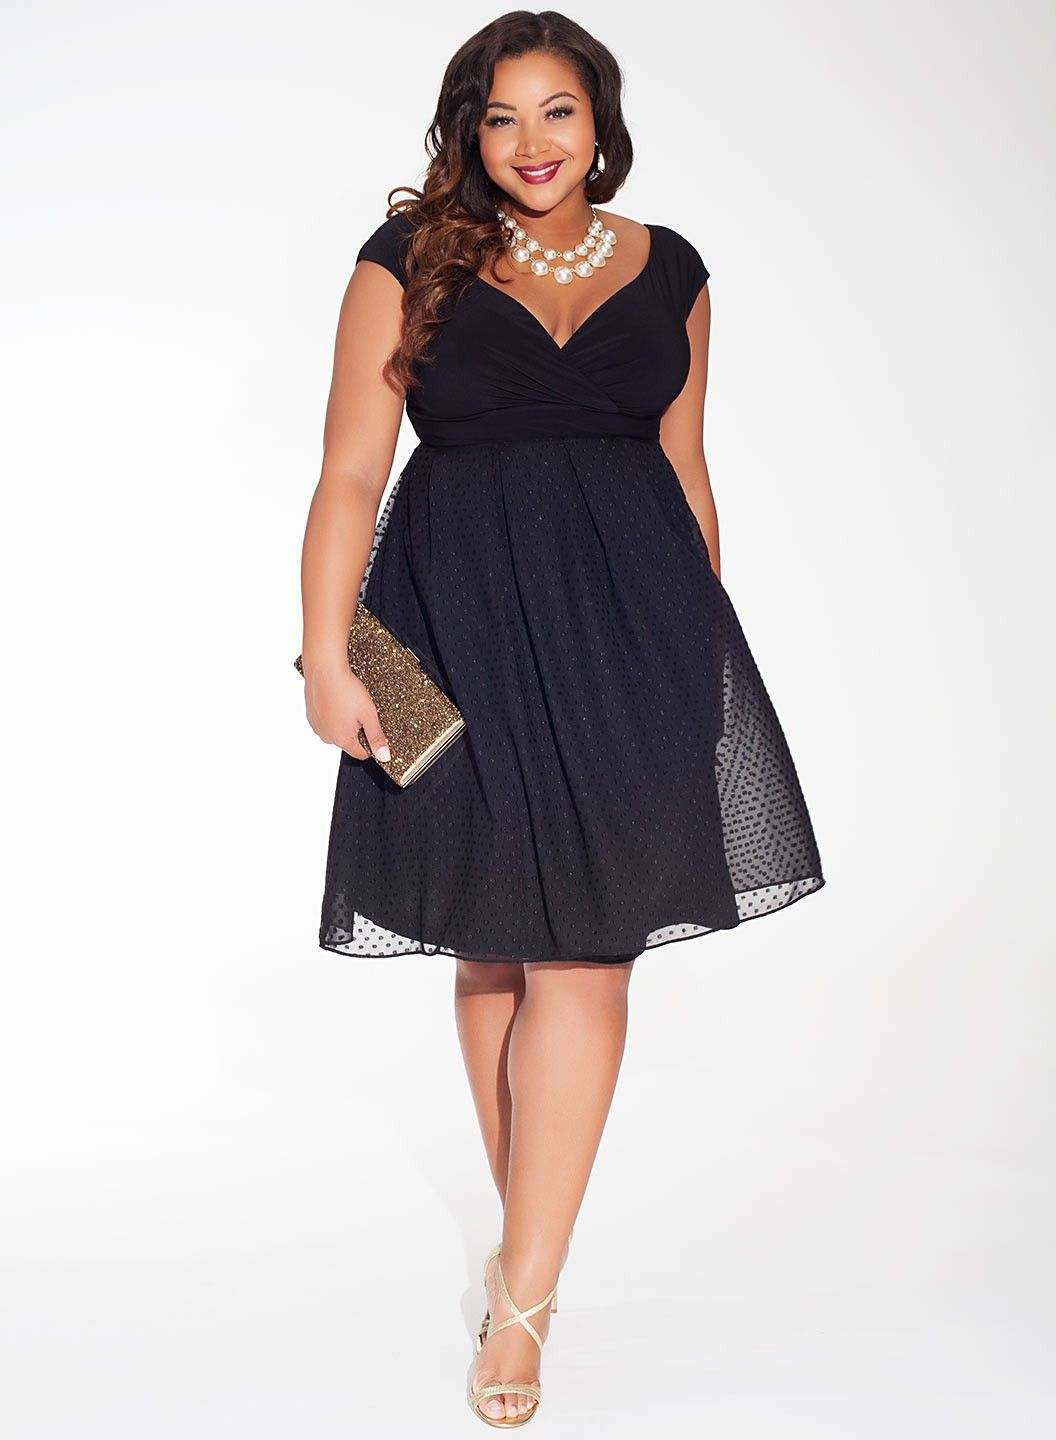 Plus Size Dress